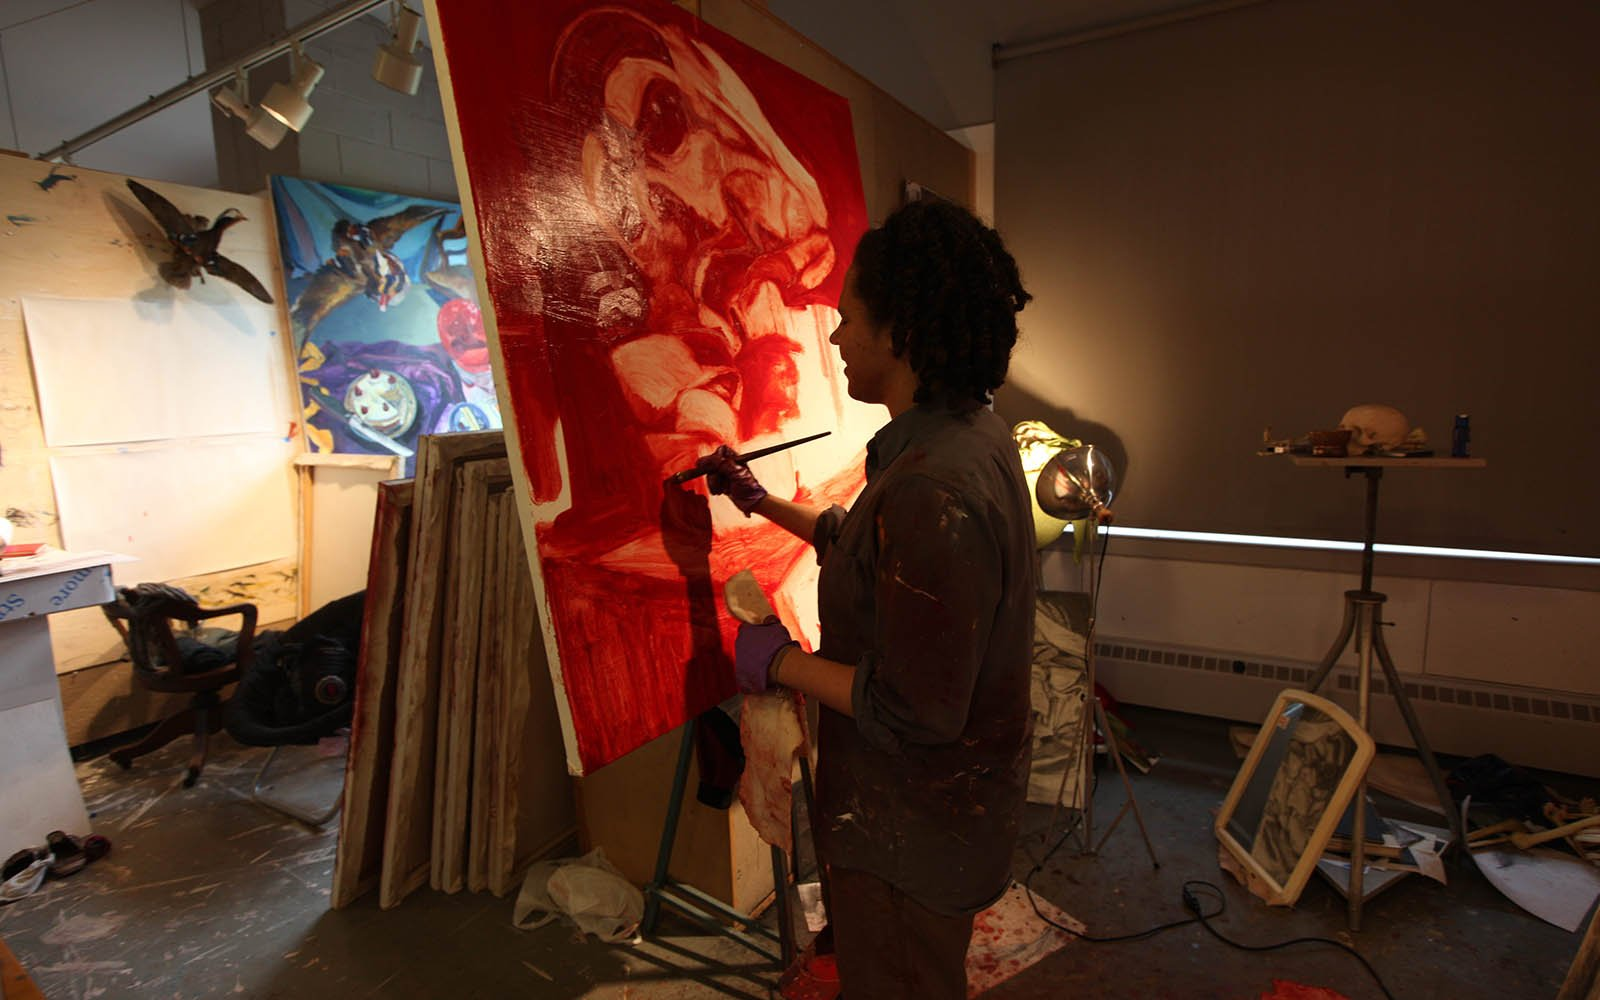 Student painting in a studio